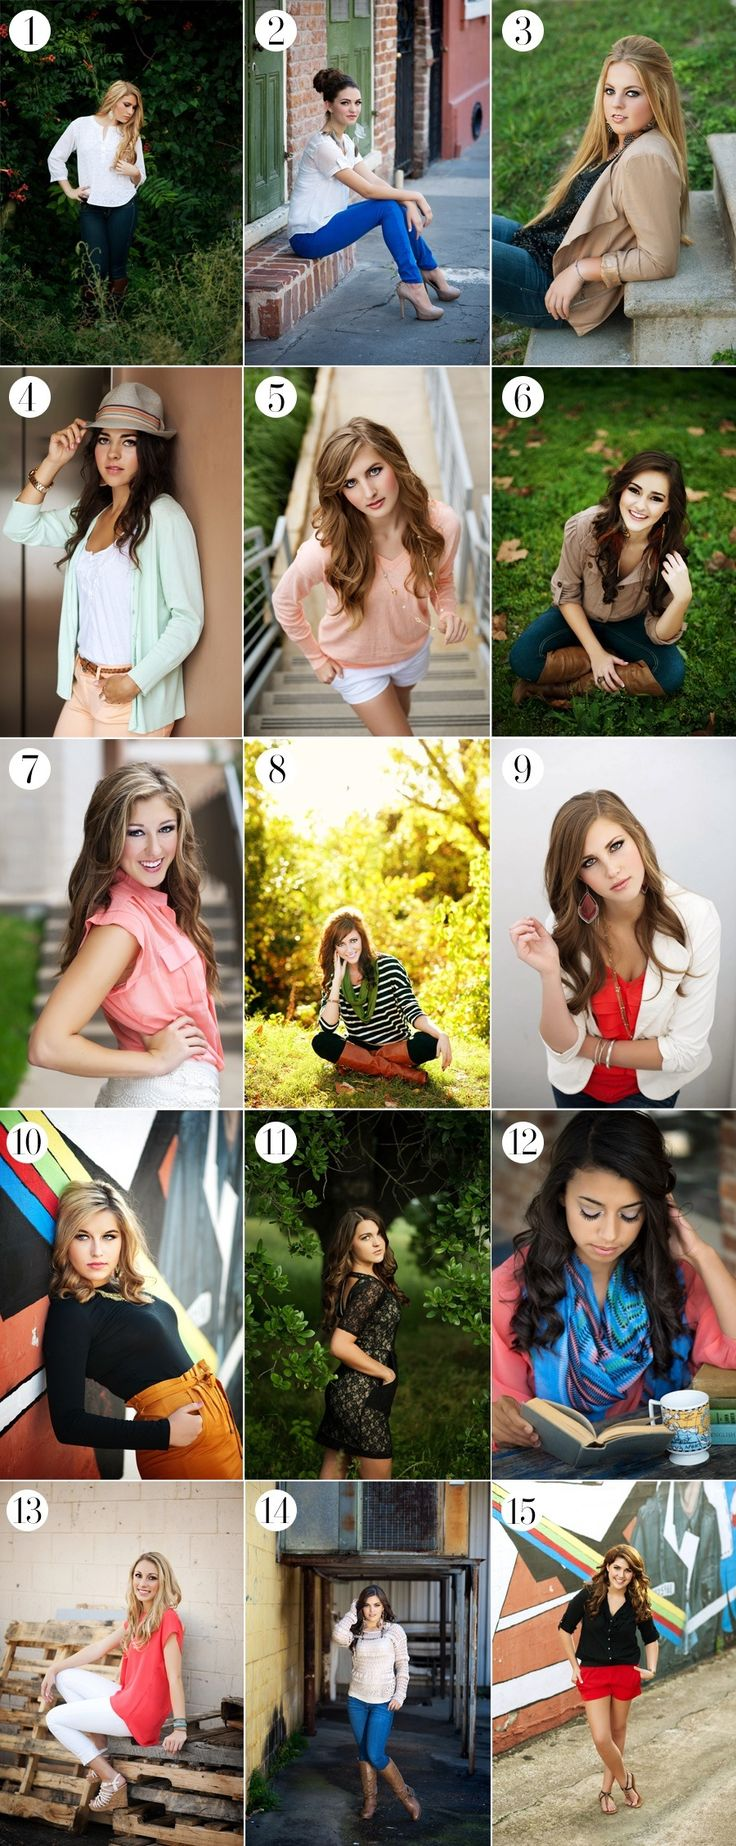 Portrait ideas... No9 is a great outfit, and I love the lifestyle concept of no 12